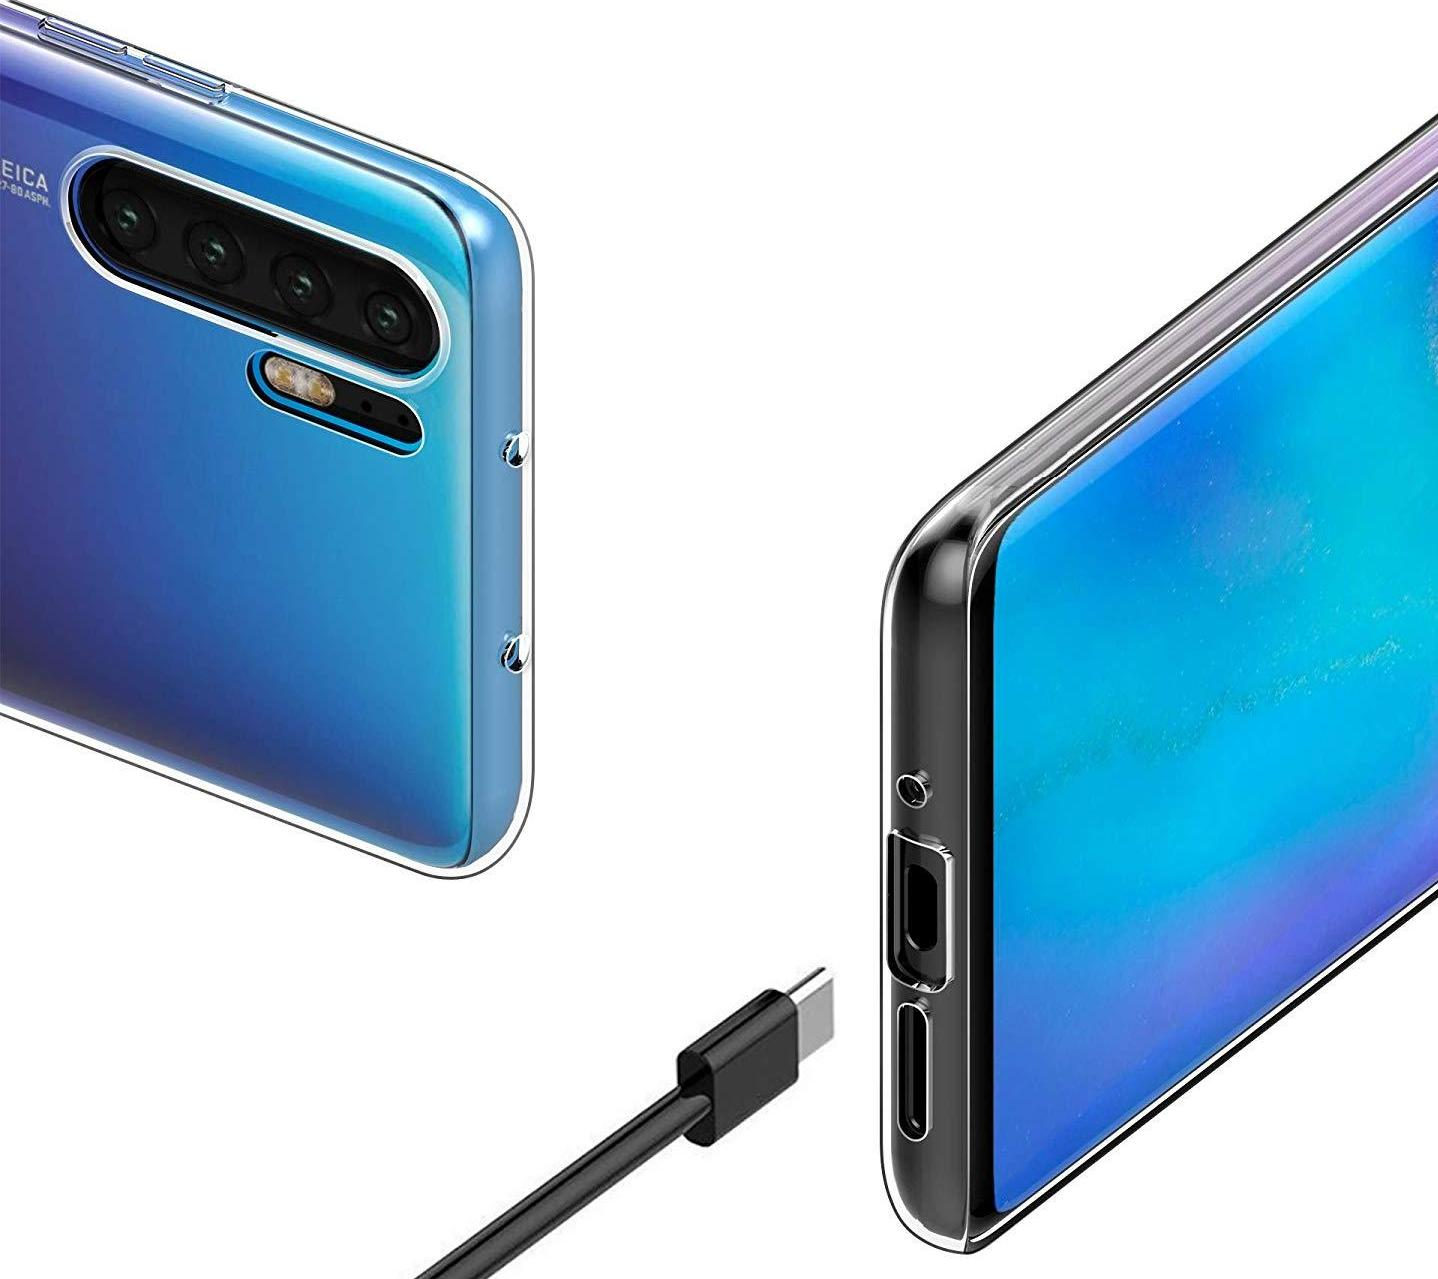 Case-for-Huawei-P30-Pro-Full-Body-Ultra-Thin-Slim-TPU-Protective-Phone-Cover thumbnail 21